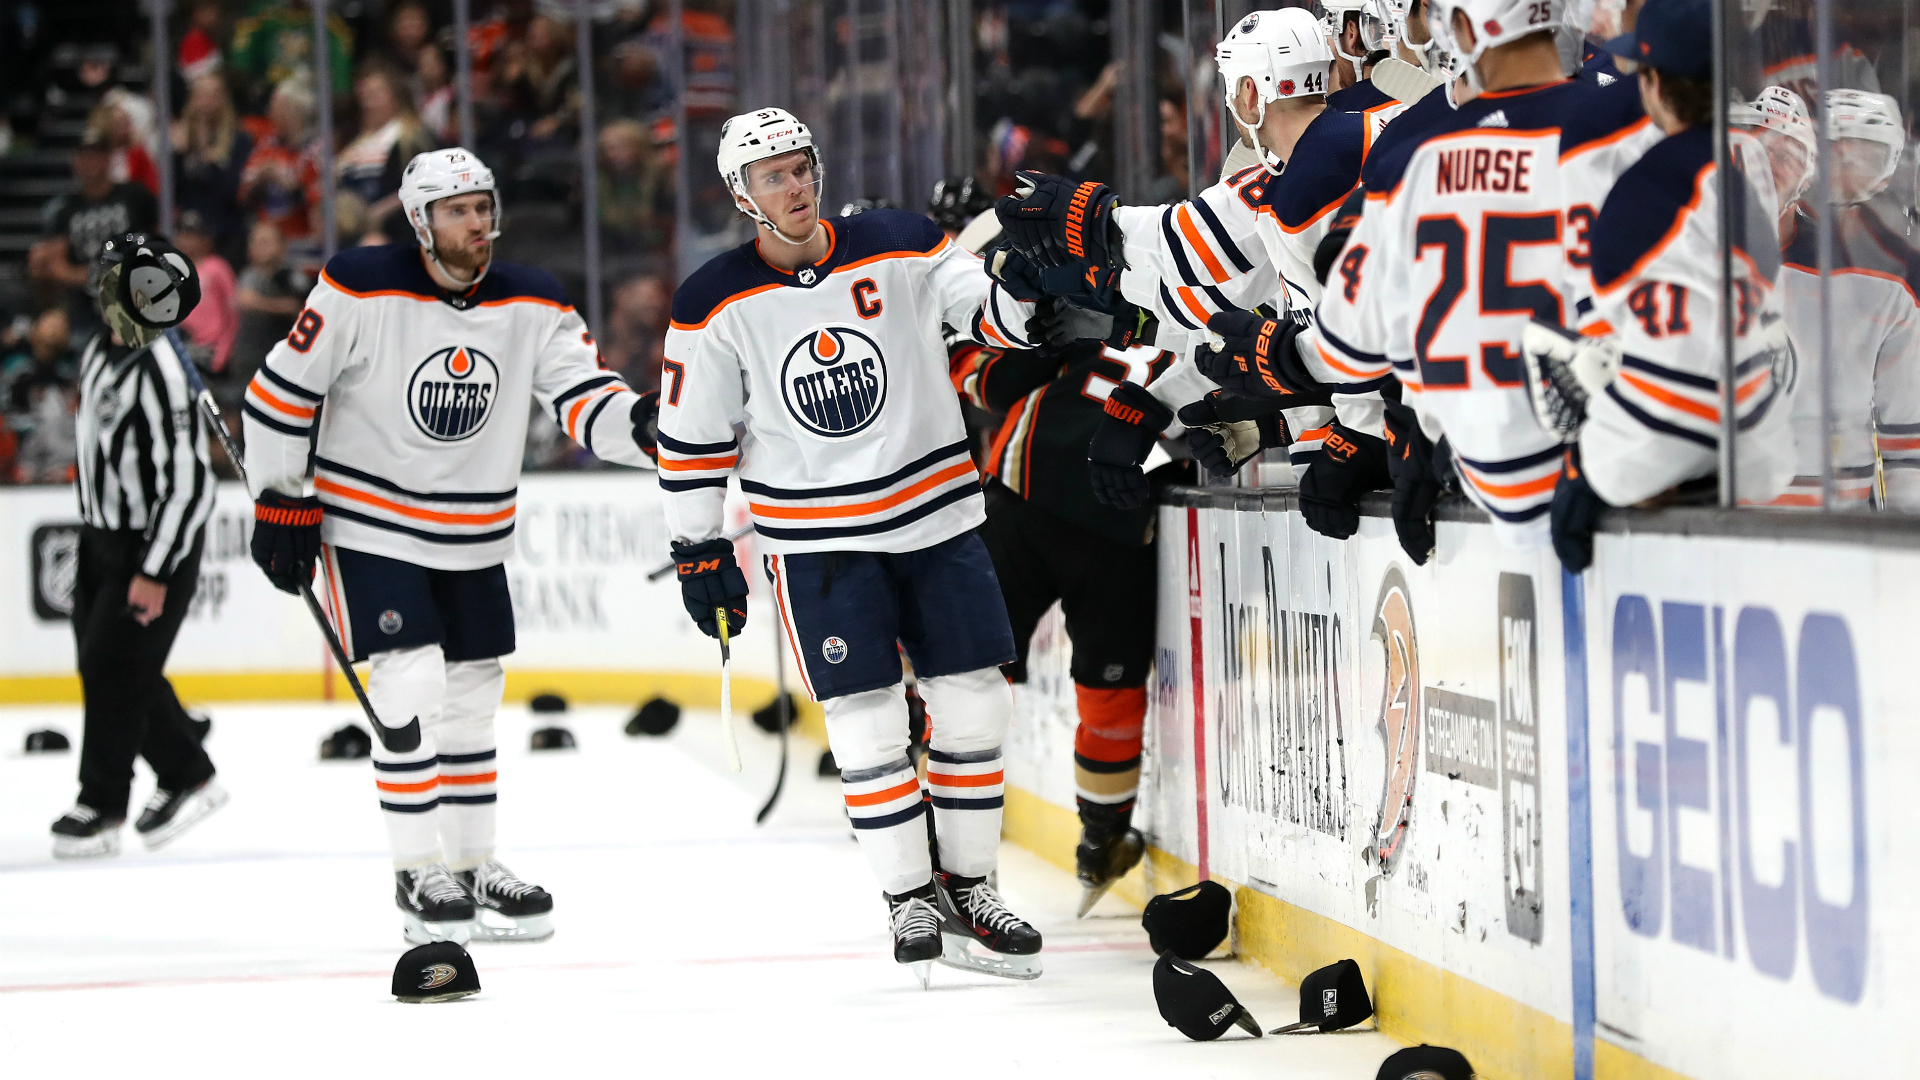 Edmonton Oilers' Connor McDavid scores second hat trick of week because he's Connor McDavid